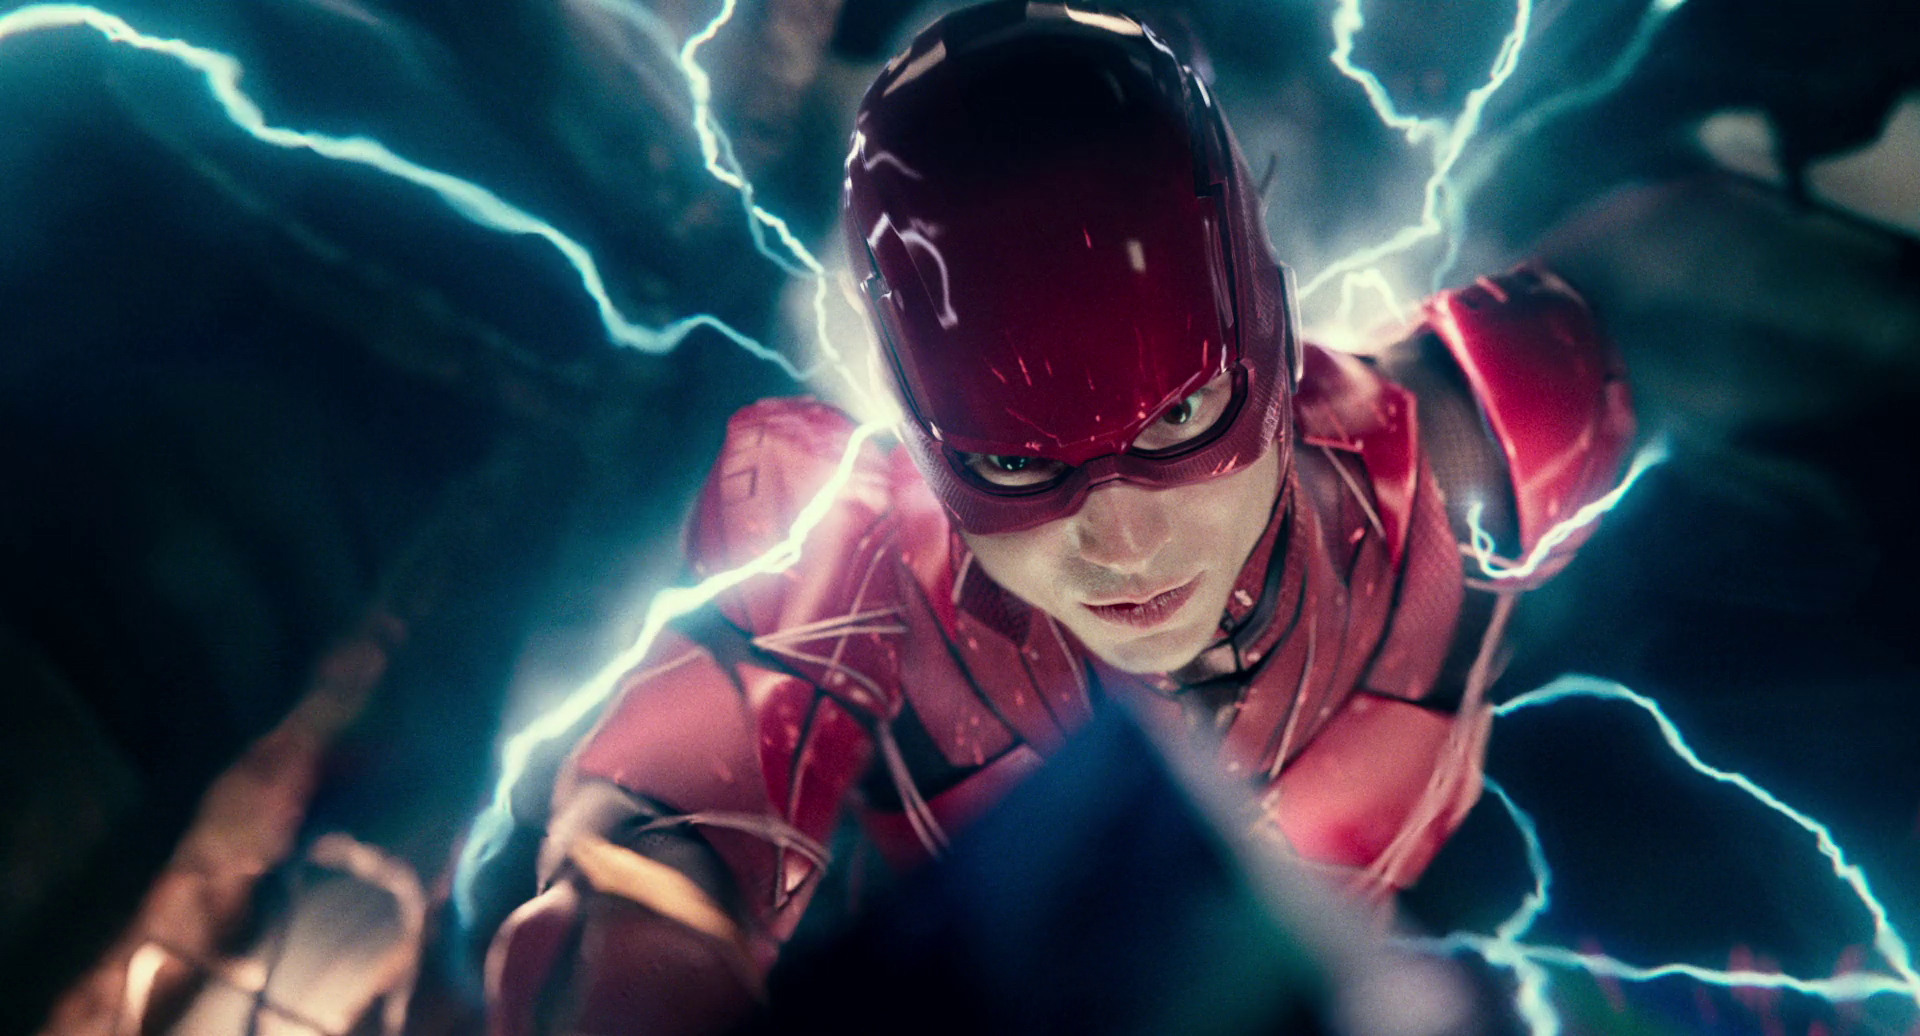 'Flashpoint' is Apparently Dependent on the Success of 'Justice League'